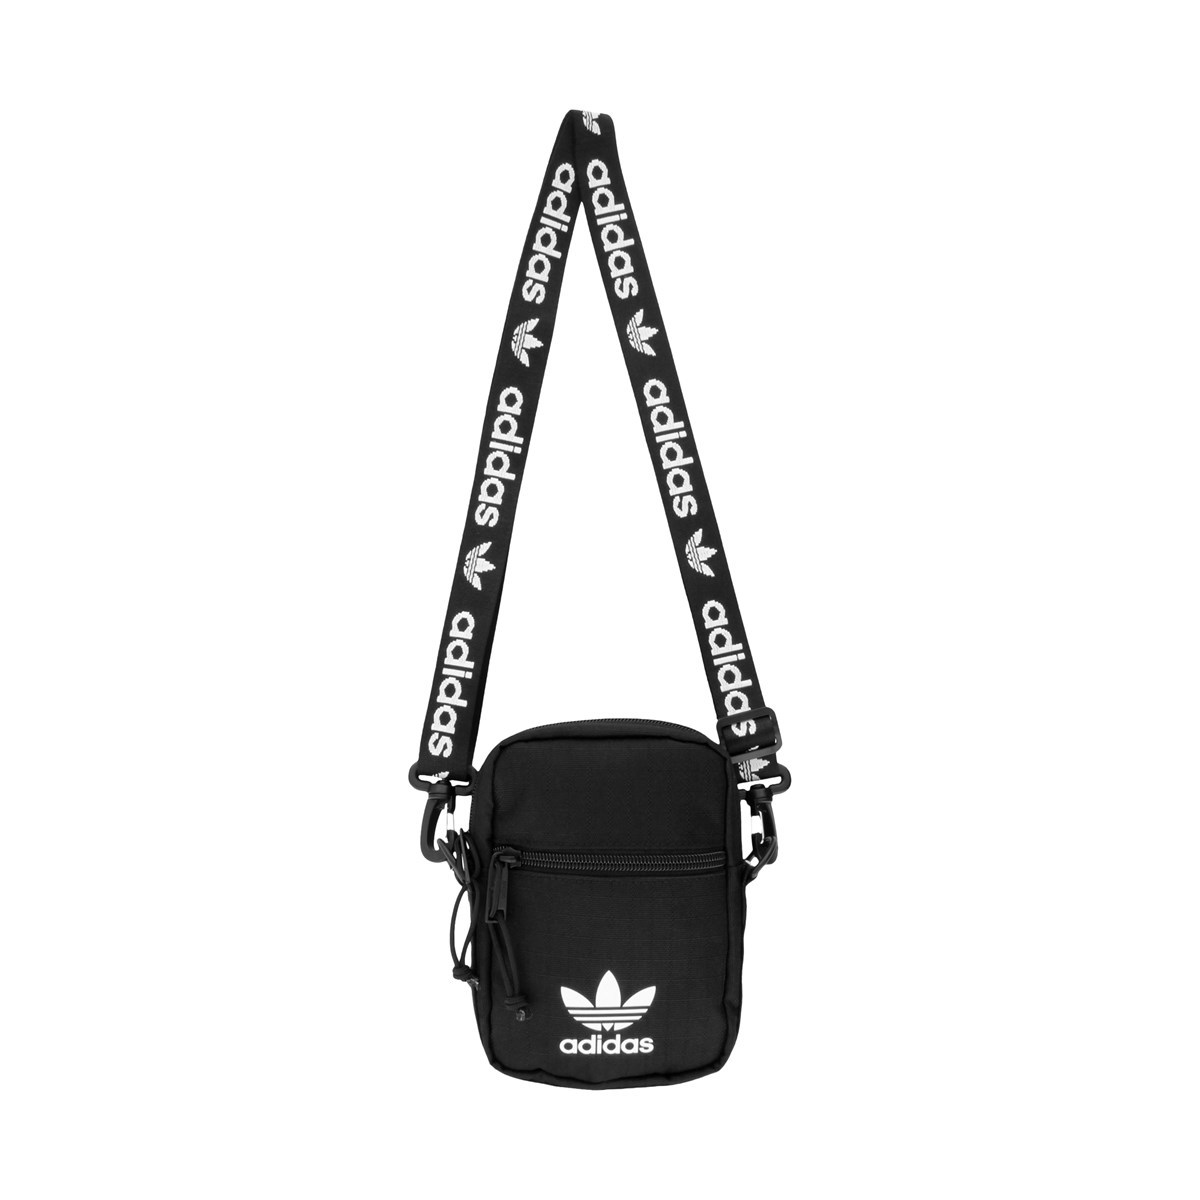 Festival Crossbody Bag in Black